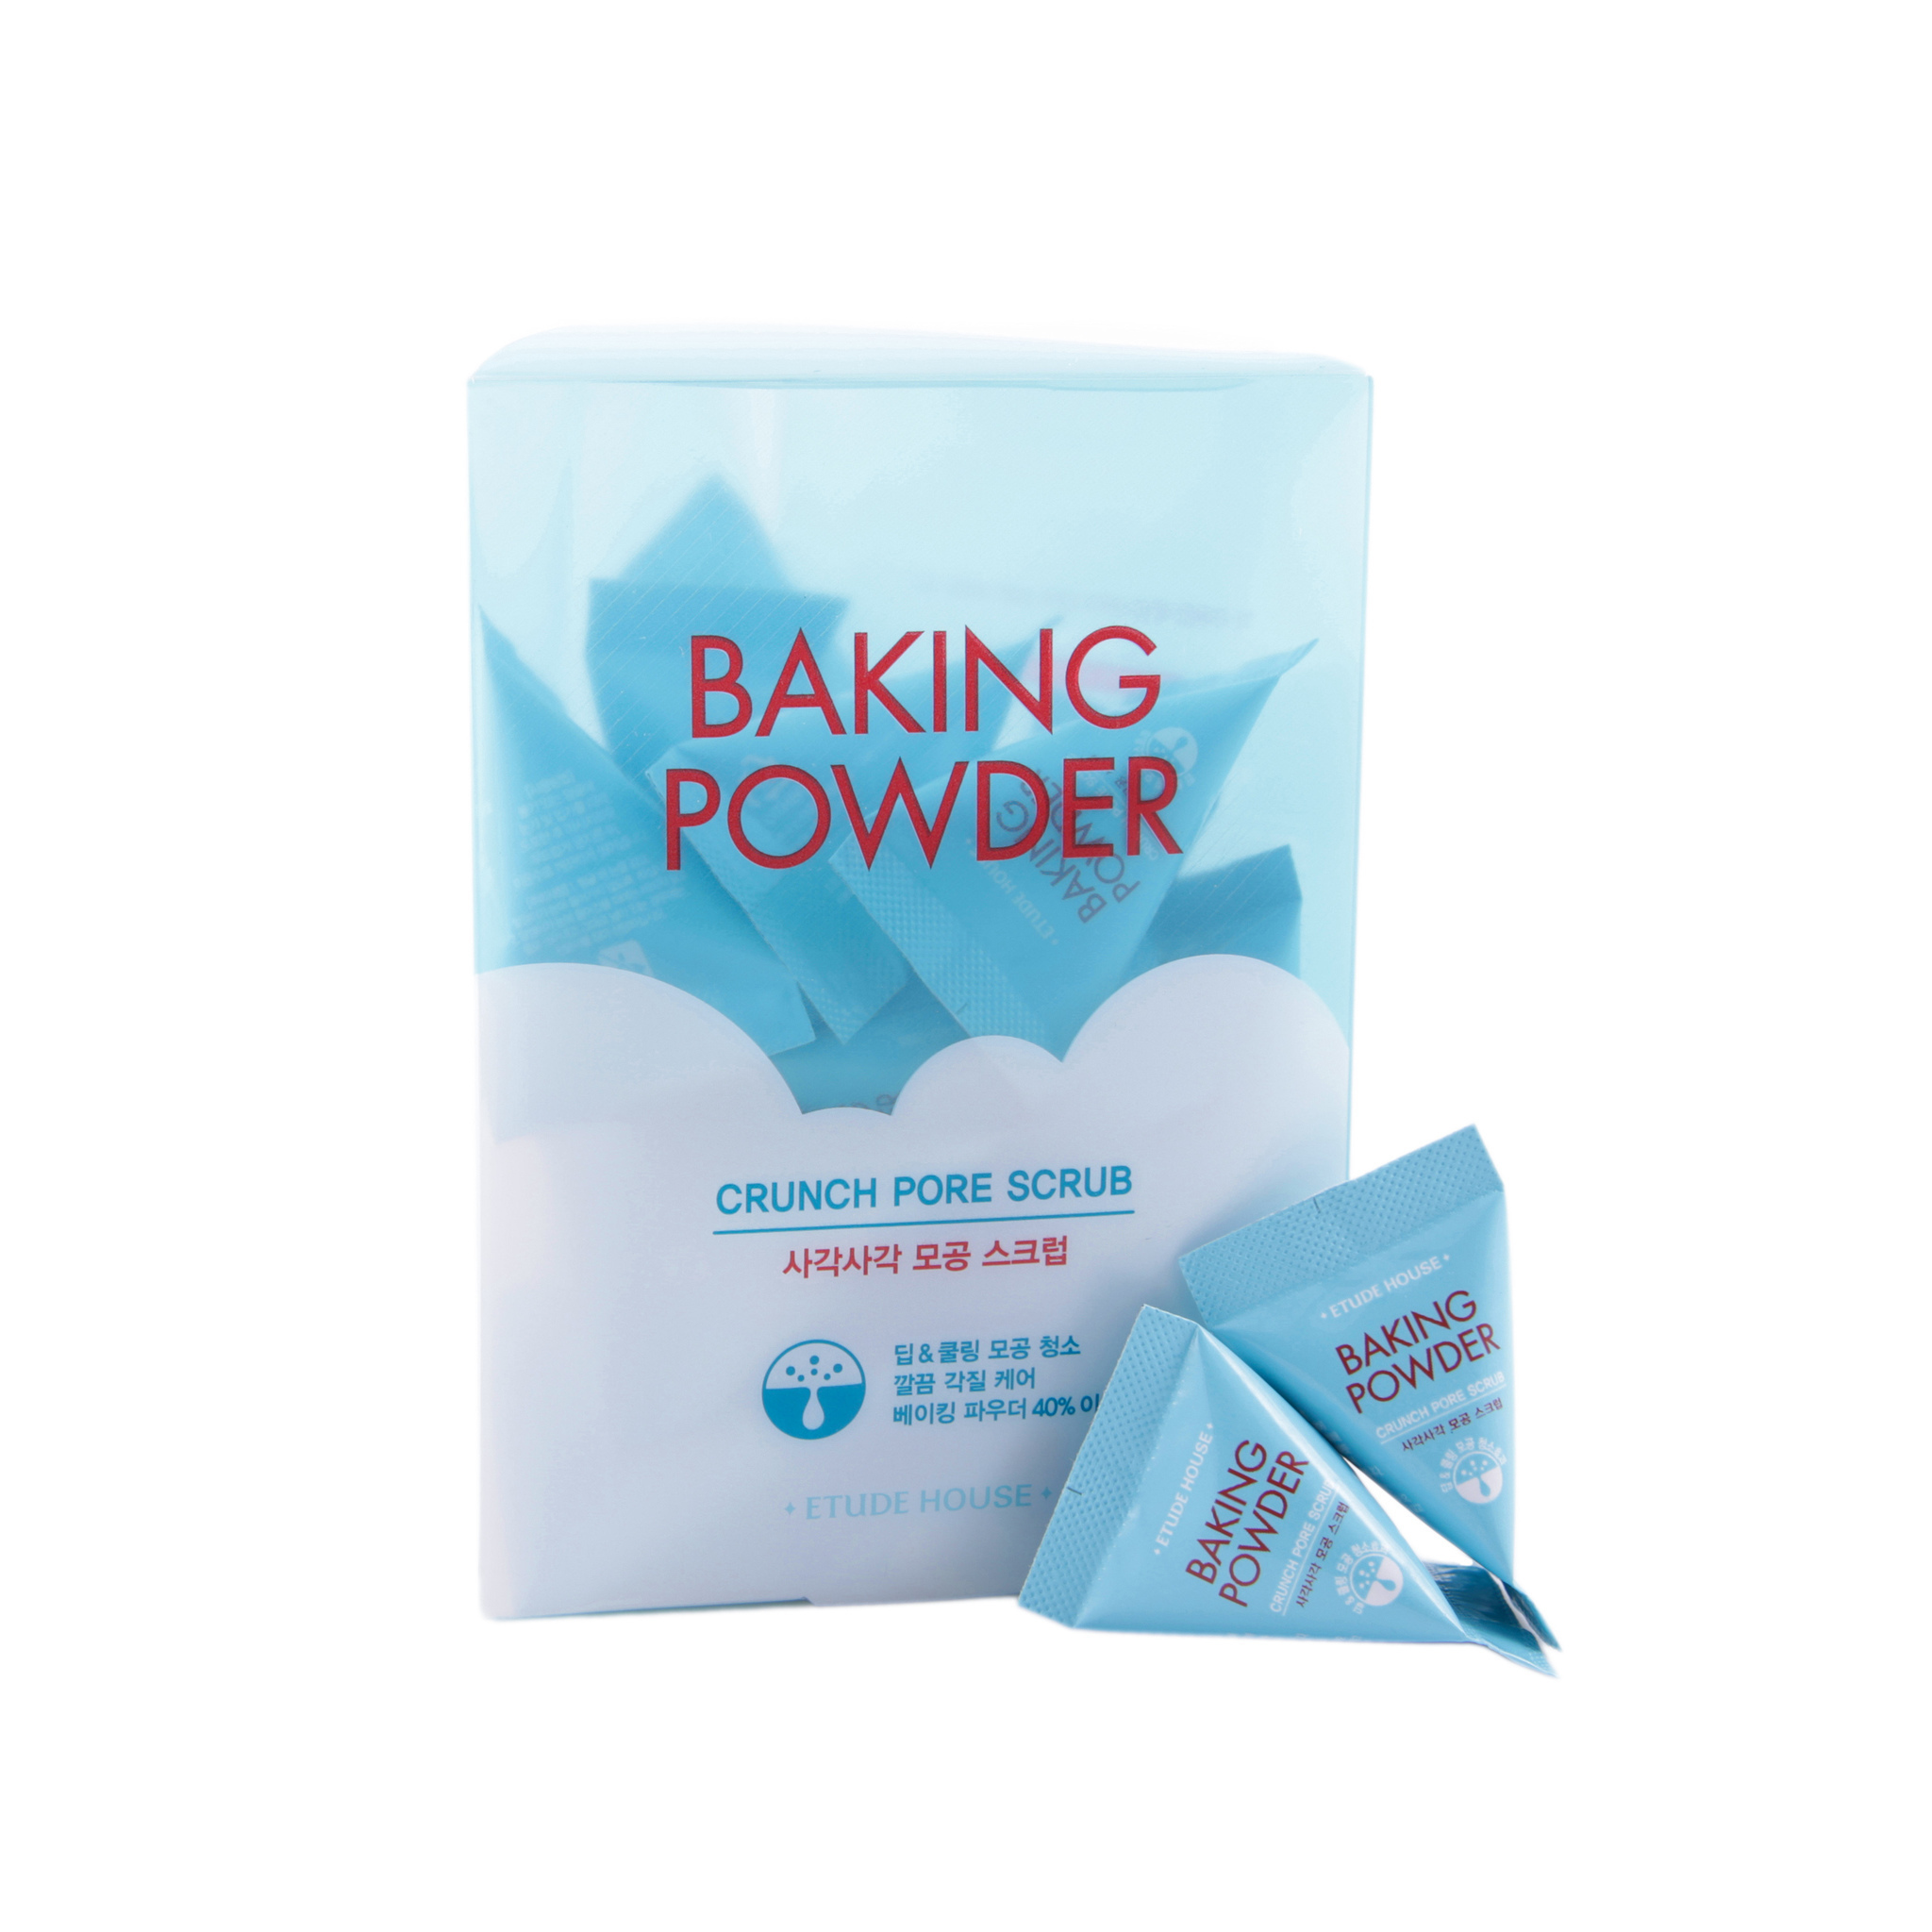 Скраб Для Лица С Содой В Пирамидках (Упаковка) (Etude House Baking Powder Crunch Pore Scrub)